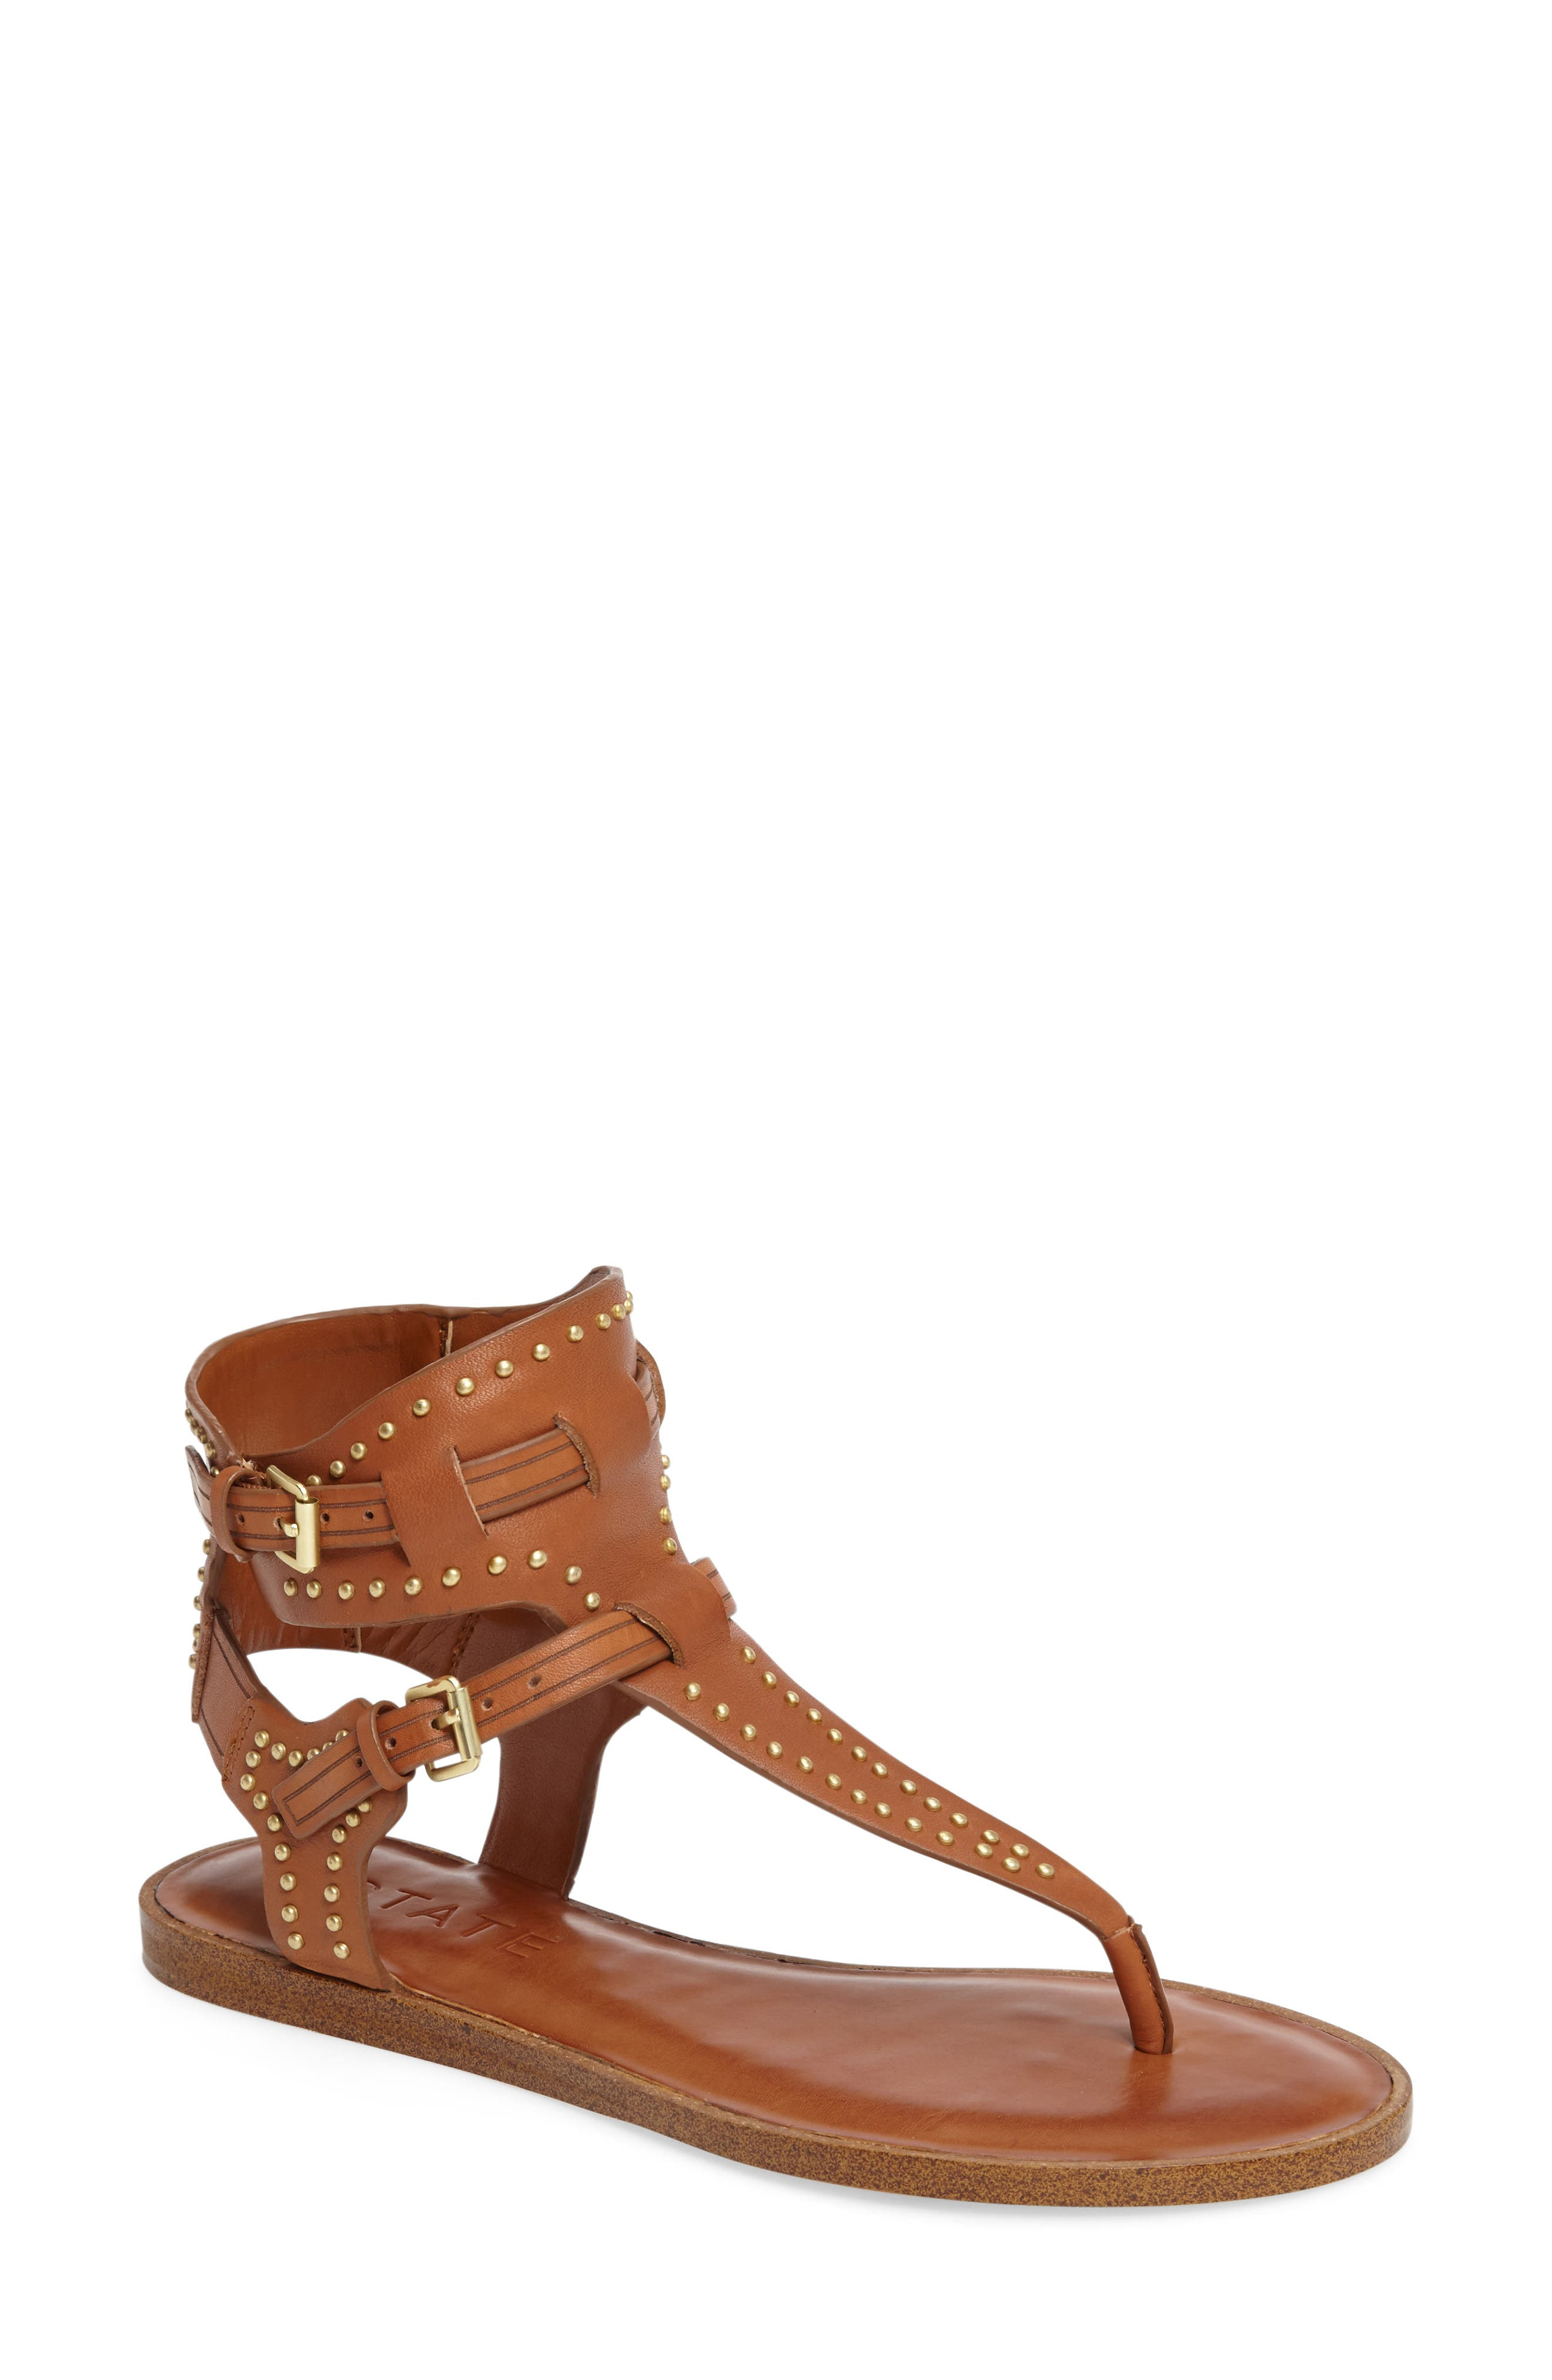 Lamanna Ankle Strap Sandal,                         Main,                         color, Tan Leather